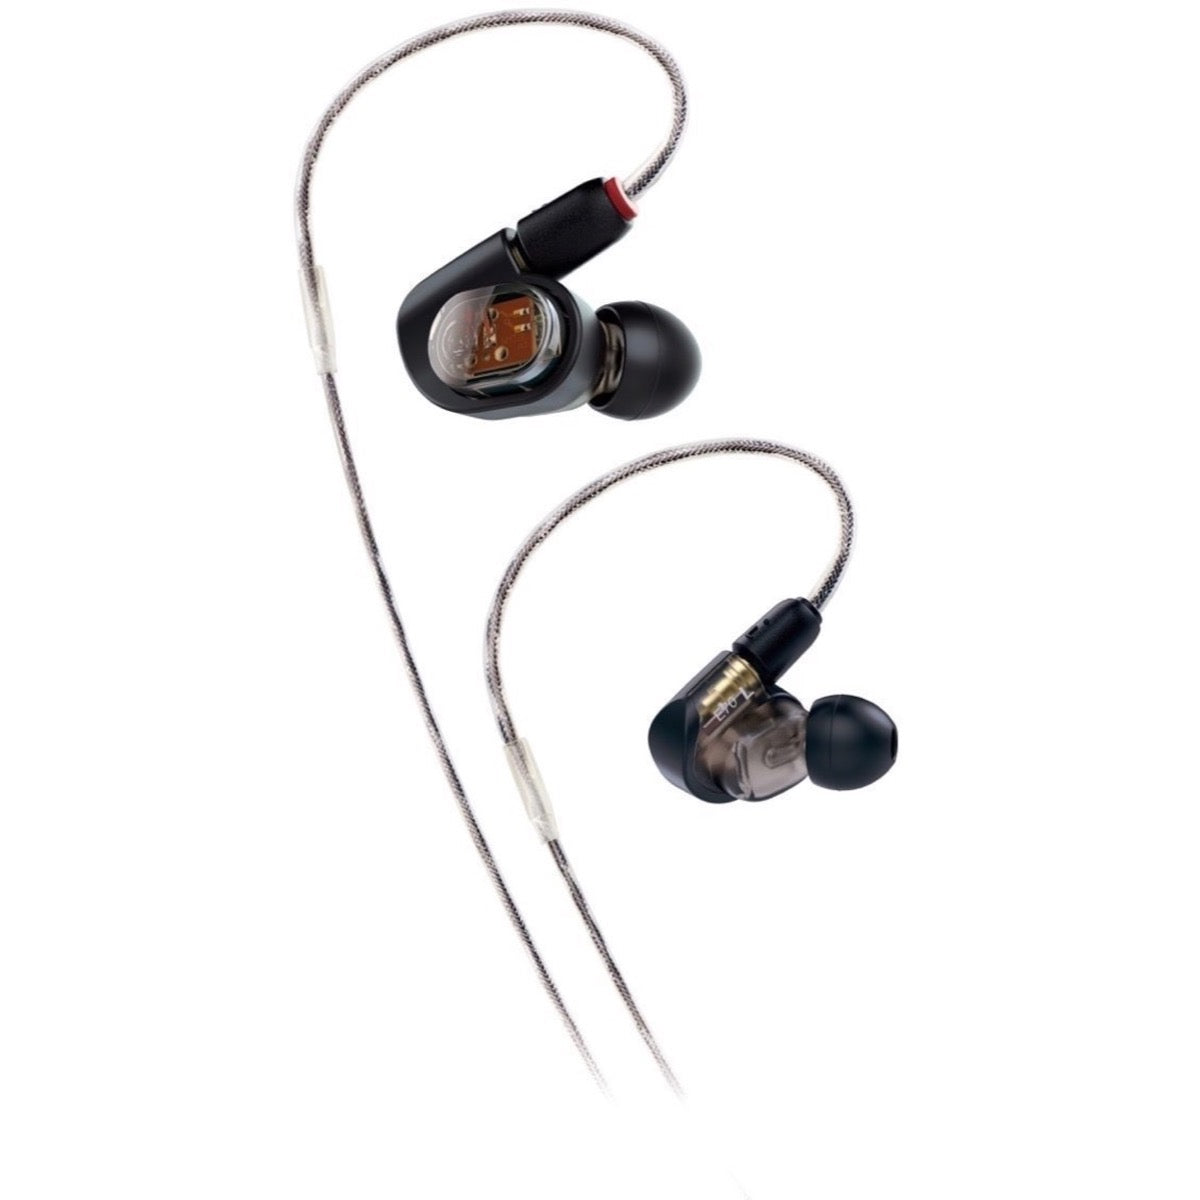 Audio-Technica ATH-E70 Professional In-Ear Monitor